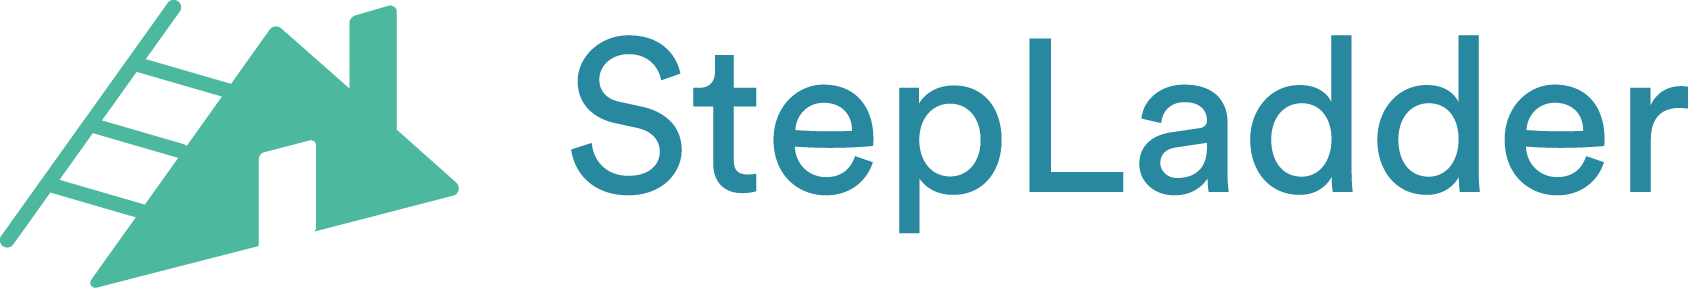 Introducing StepLadder: the collaborative solution to get first-time buyers on the property ladder